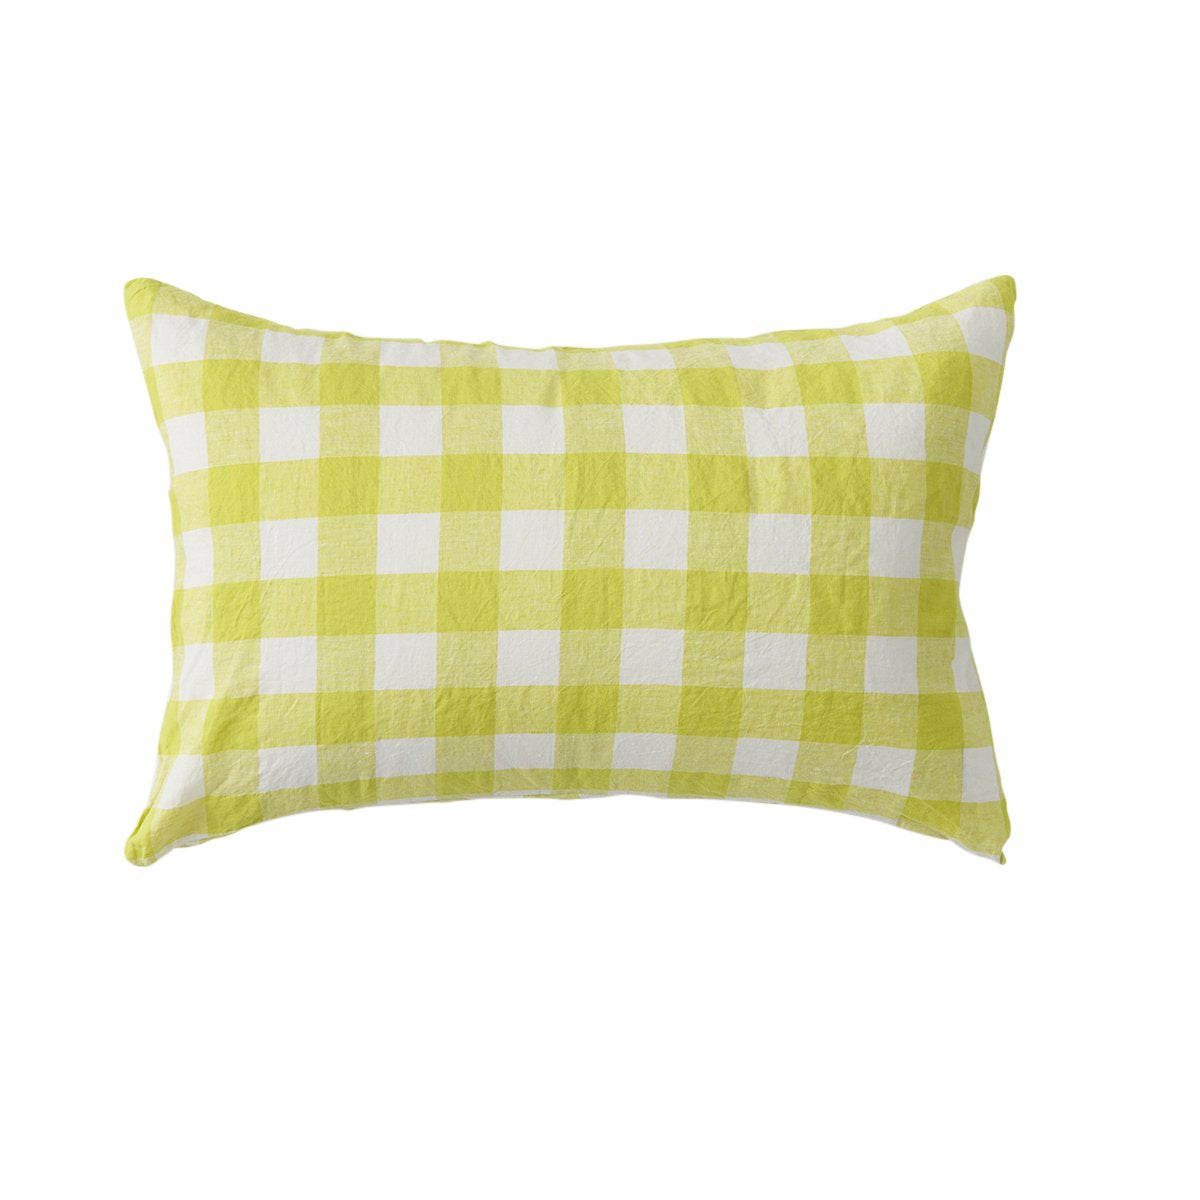 Pillowcase sets : Limoncello